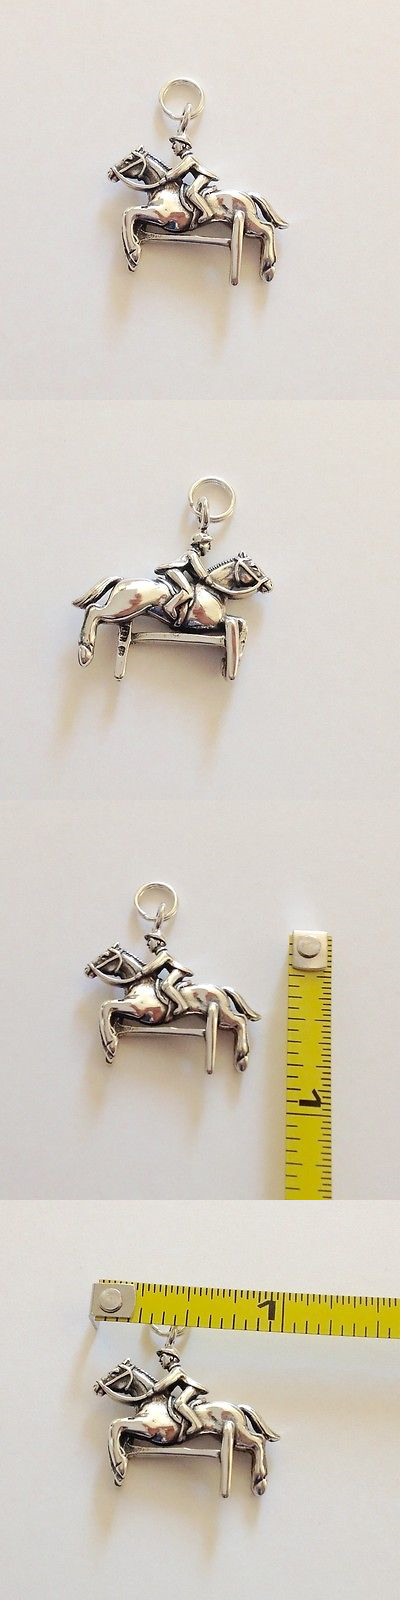 Other Artisan Jewelry 12519: 3D Derby Race Horse And Jockey Charm/Pendant. 6.1 Gr. Sterling Silver. BUY IT NOW ONLY: $33.0